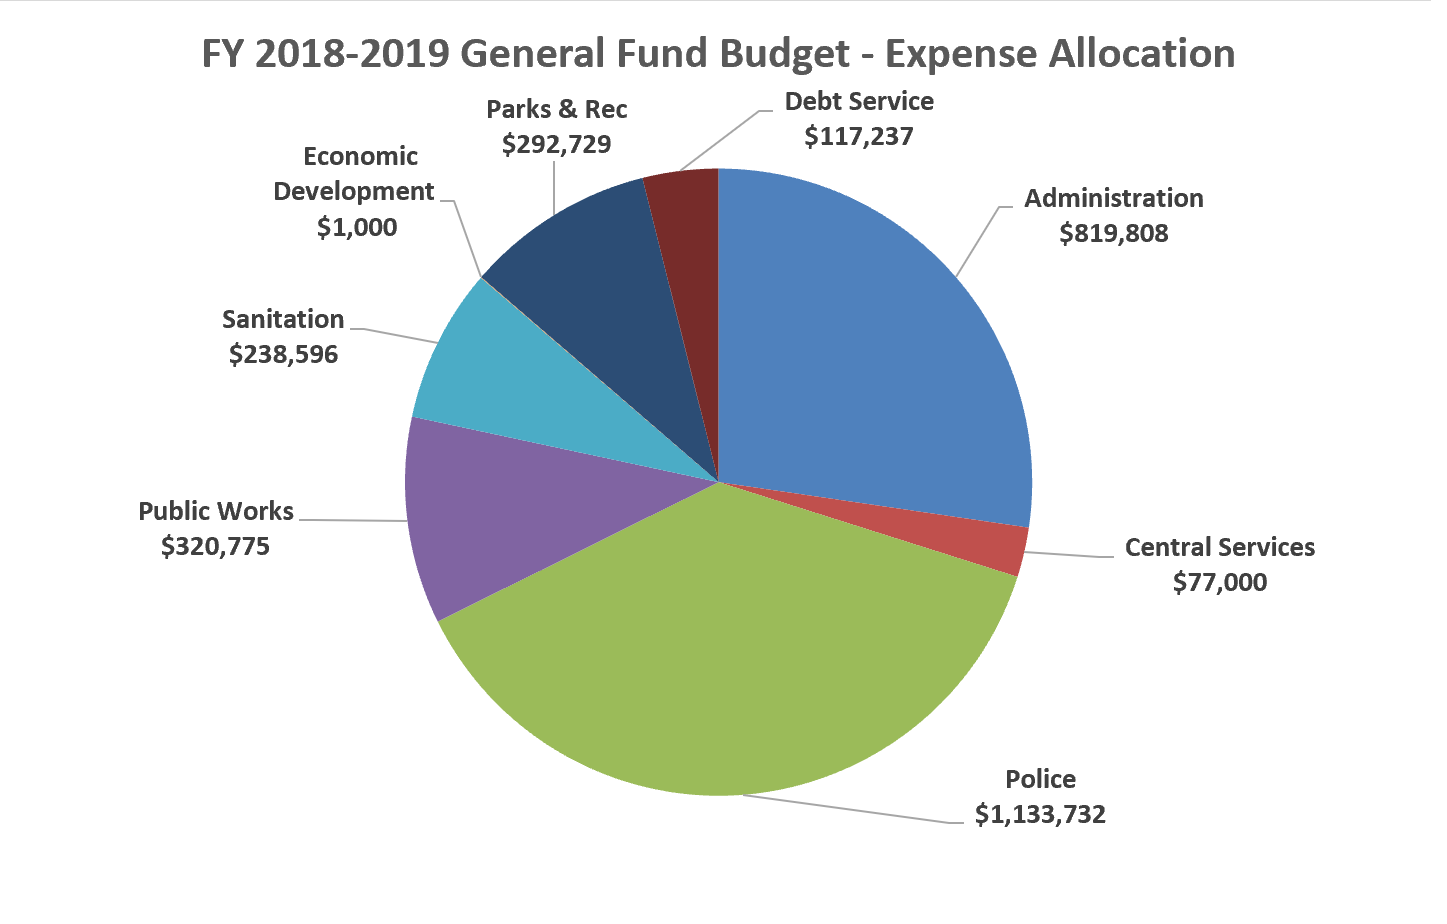 FY 2018-2019 GF Budget Expense Allocation.JPEG